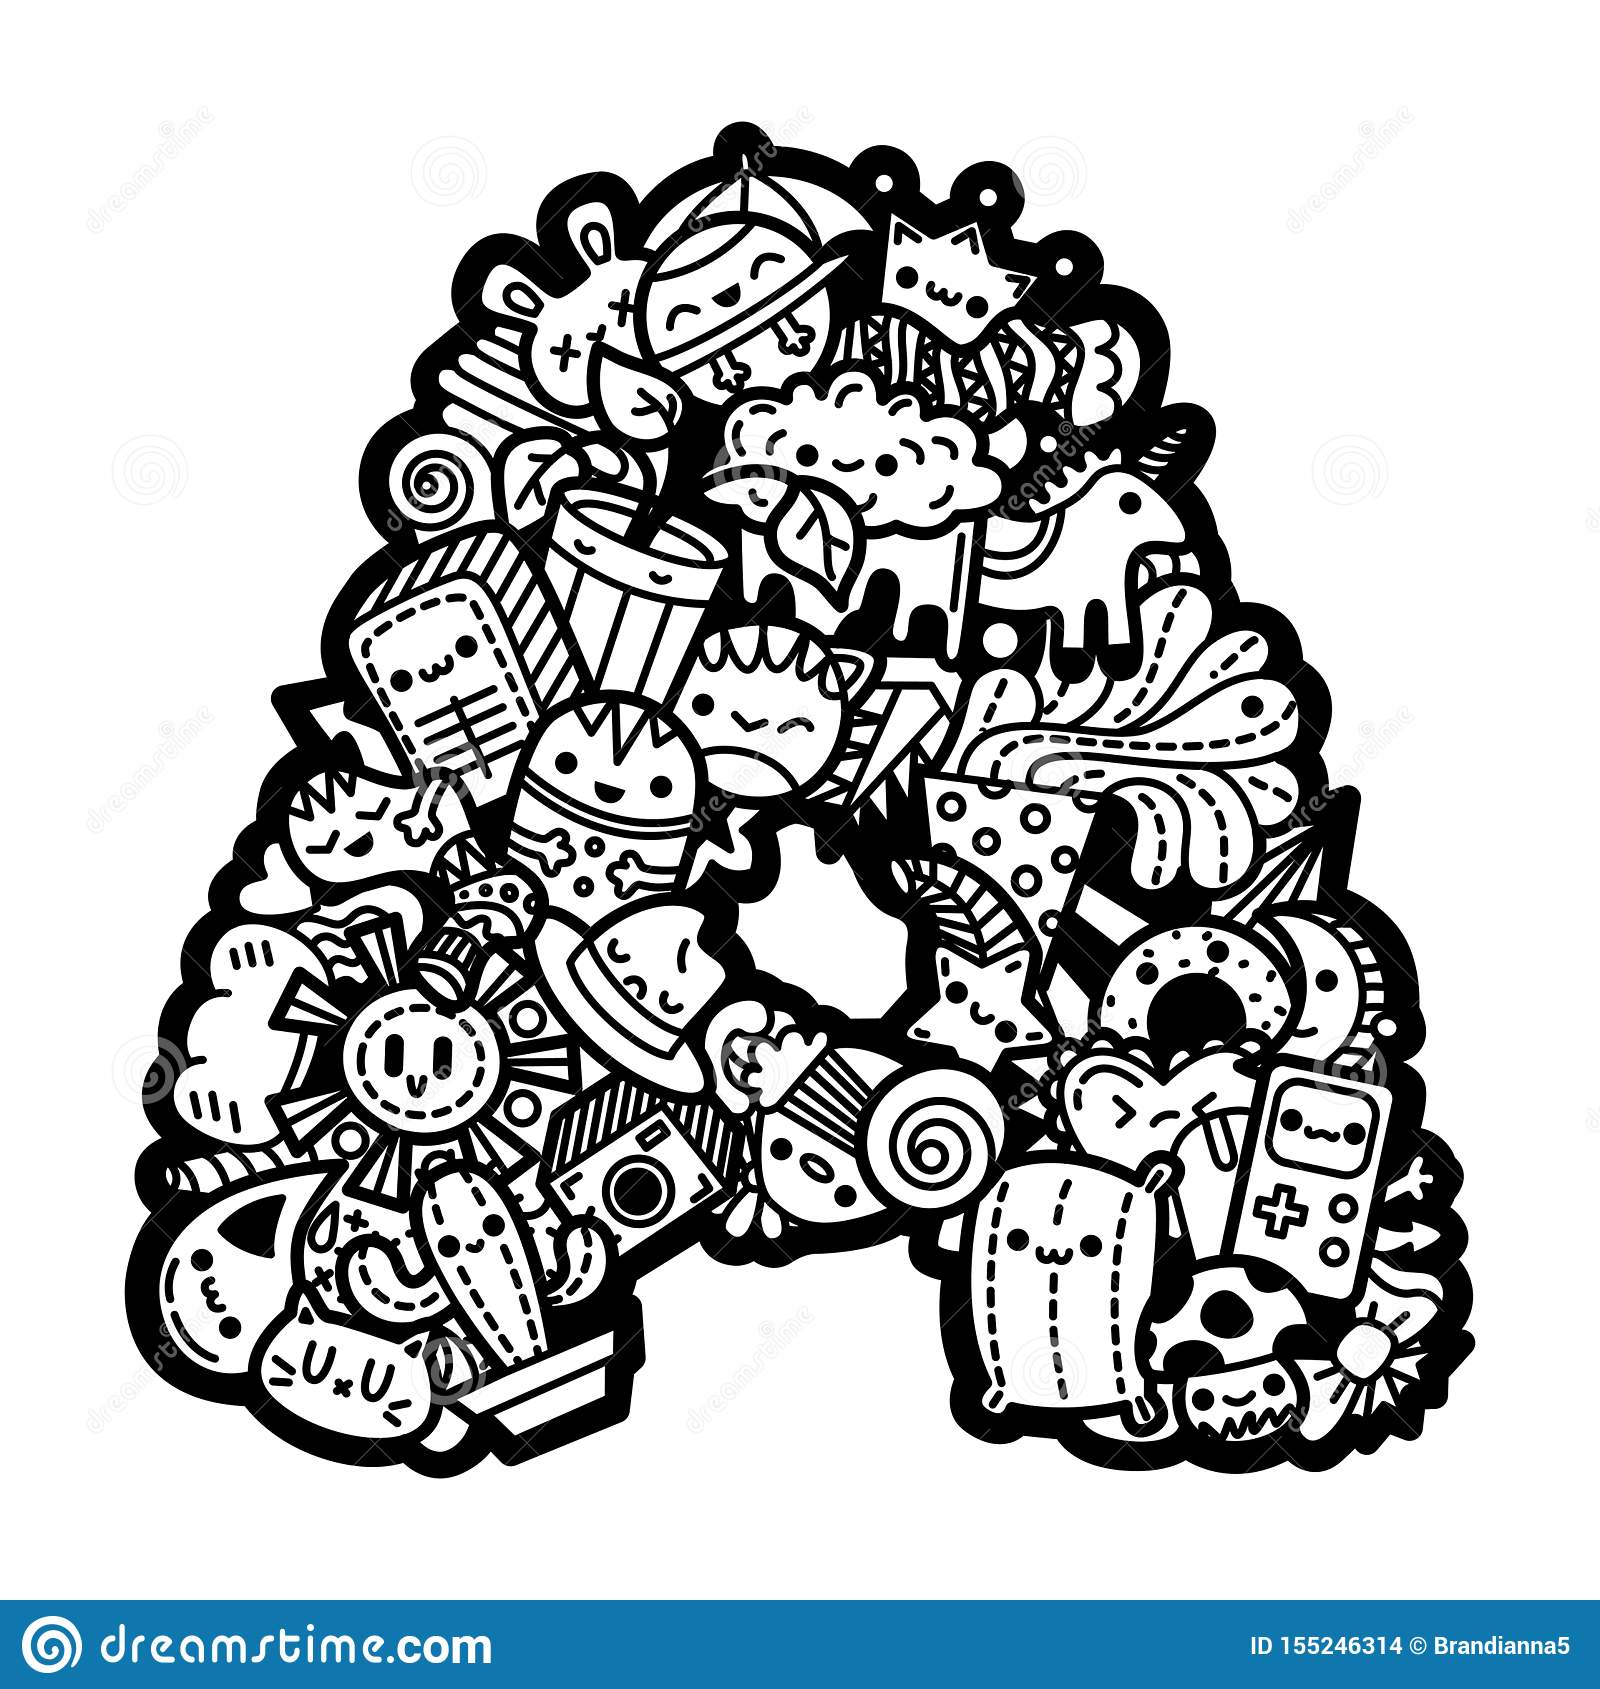 Cute Foods Coloring Pages Free - Coloring Home | 1689x1600